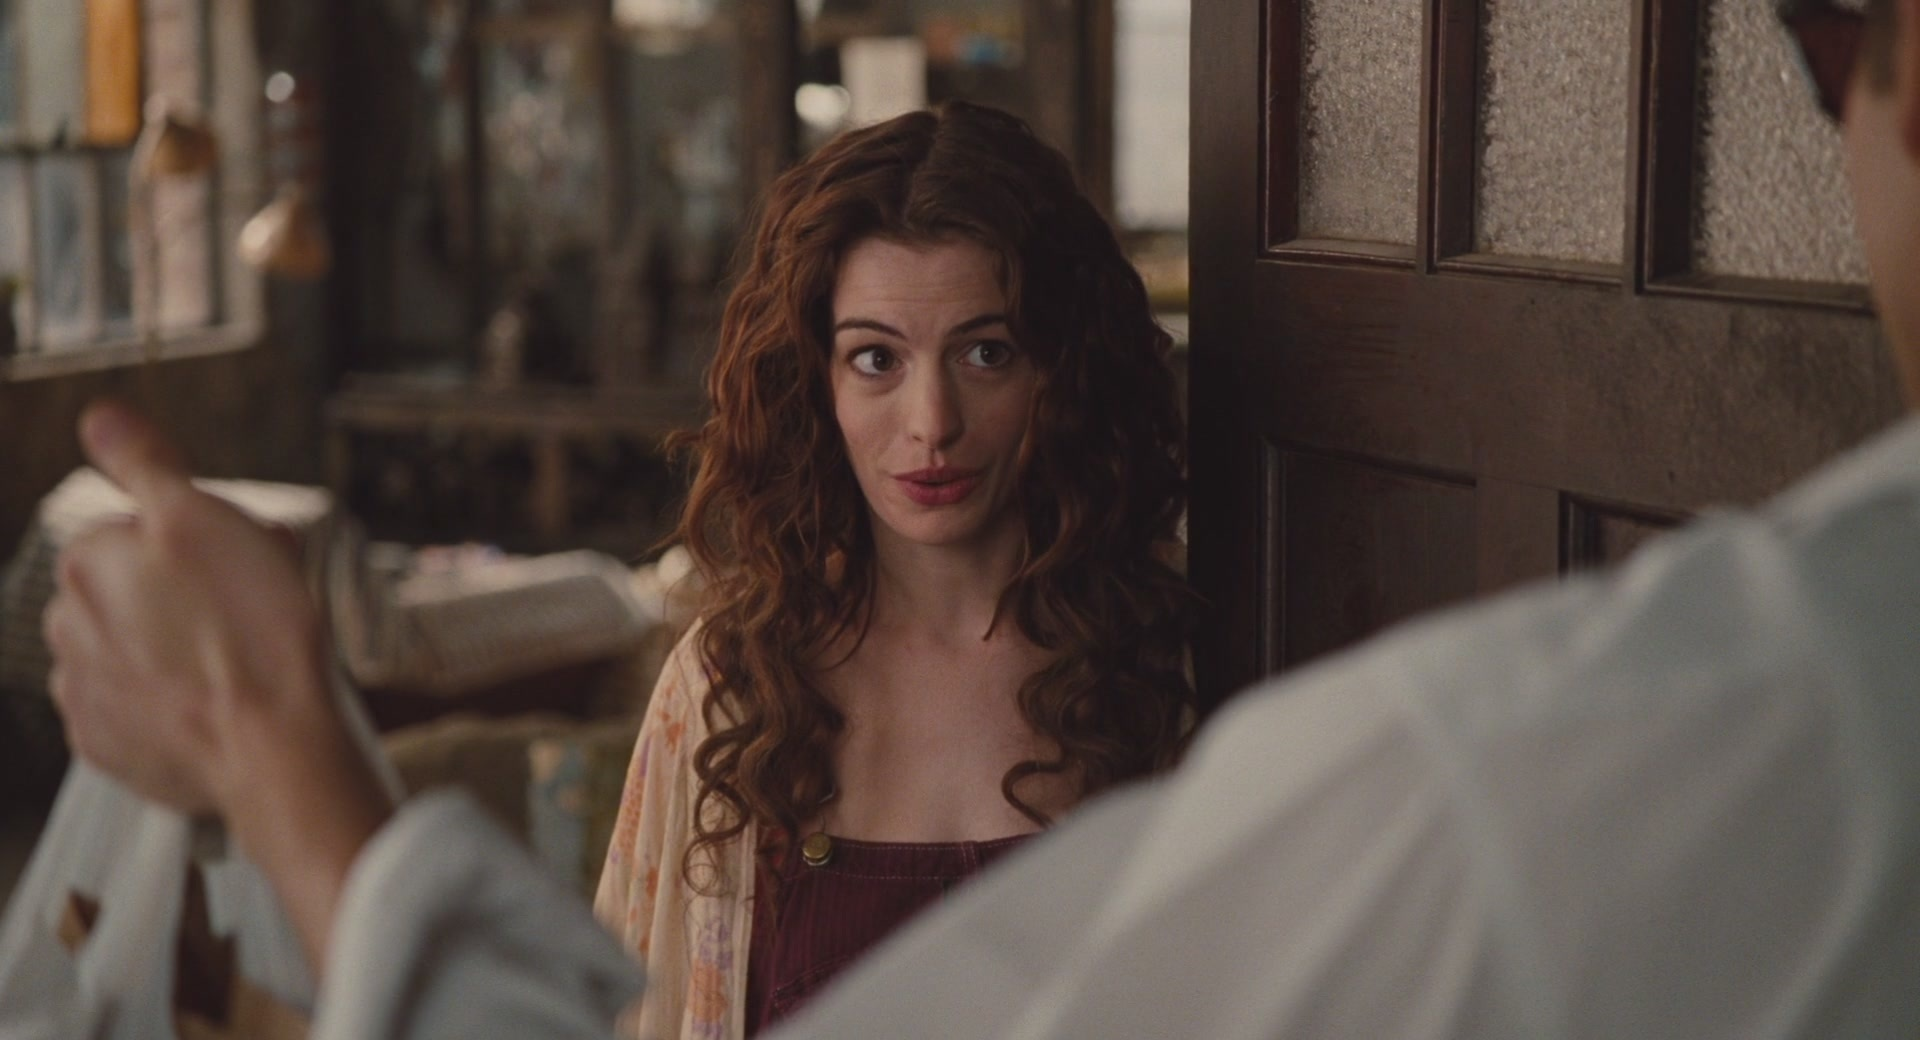 Anne hathaway love and other drgs